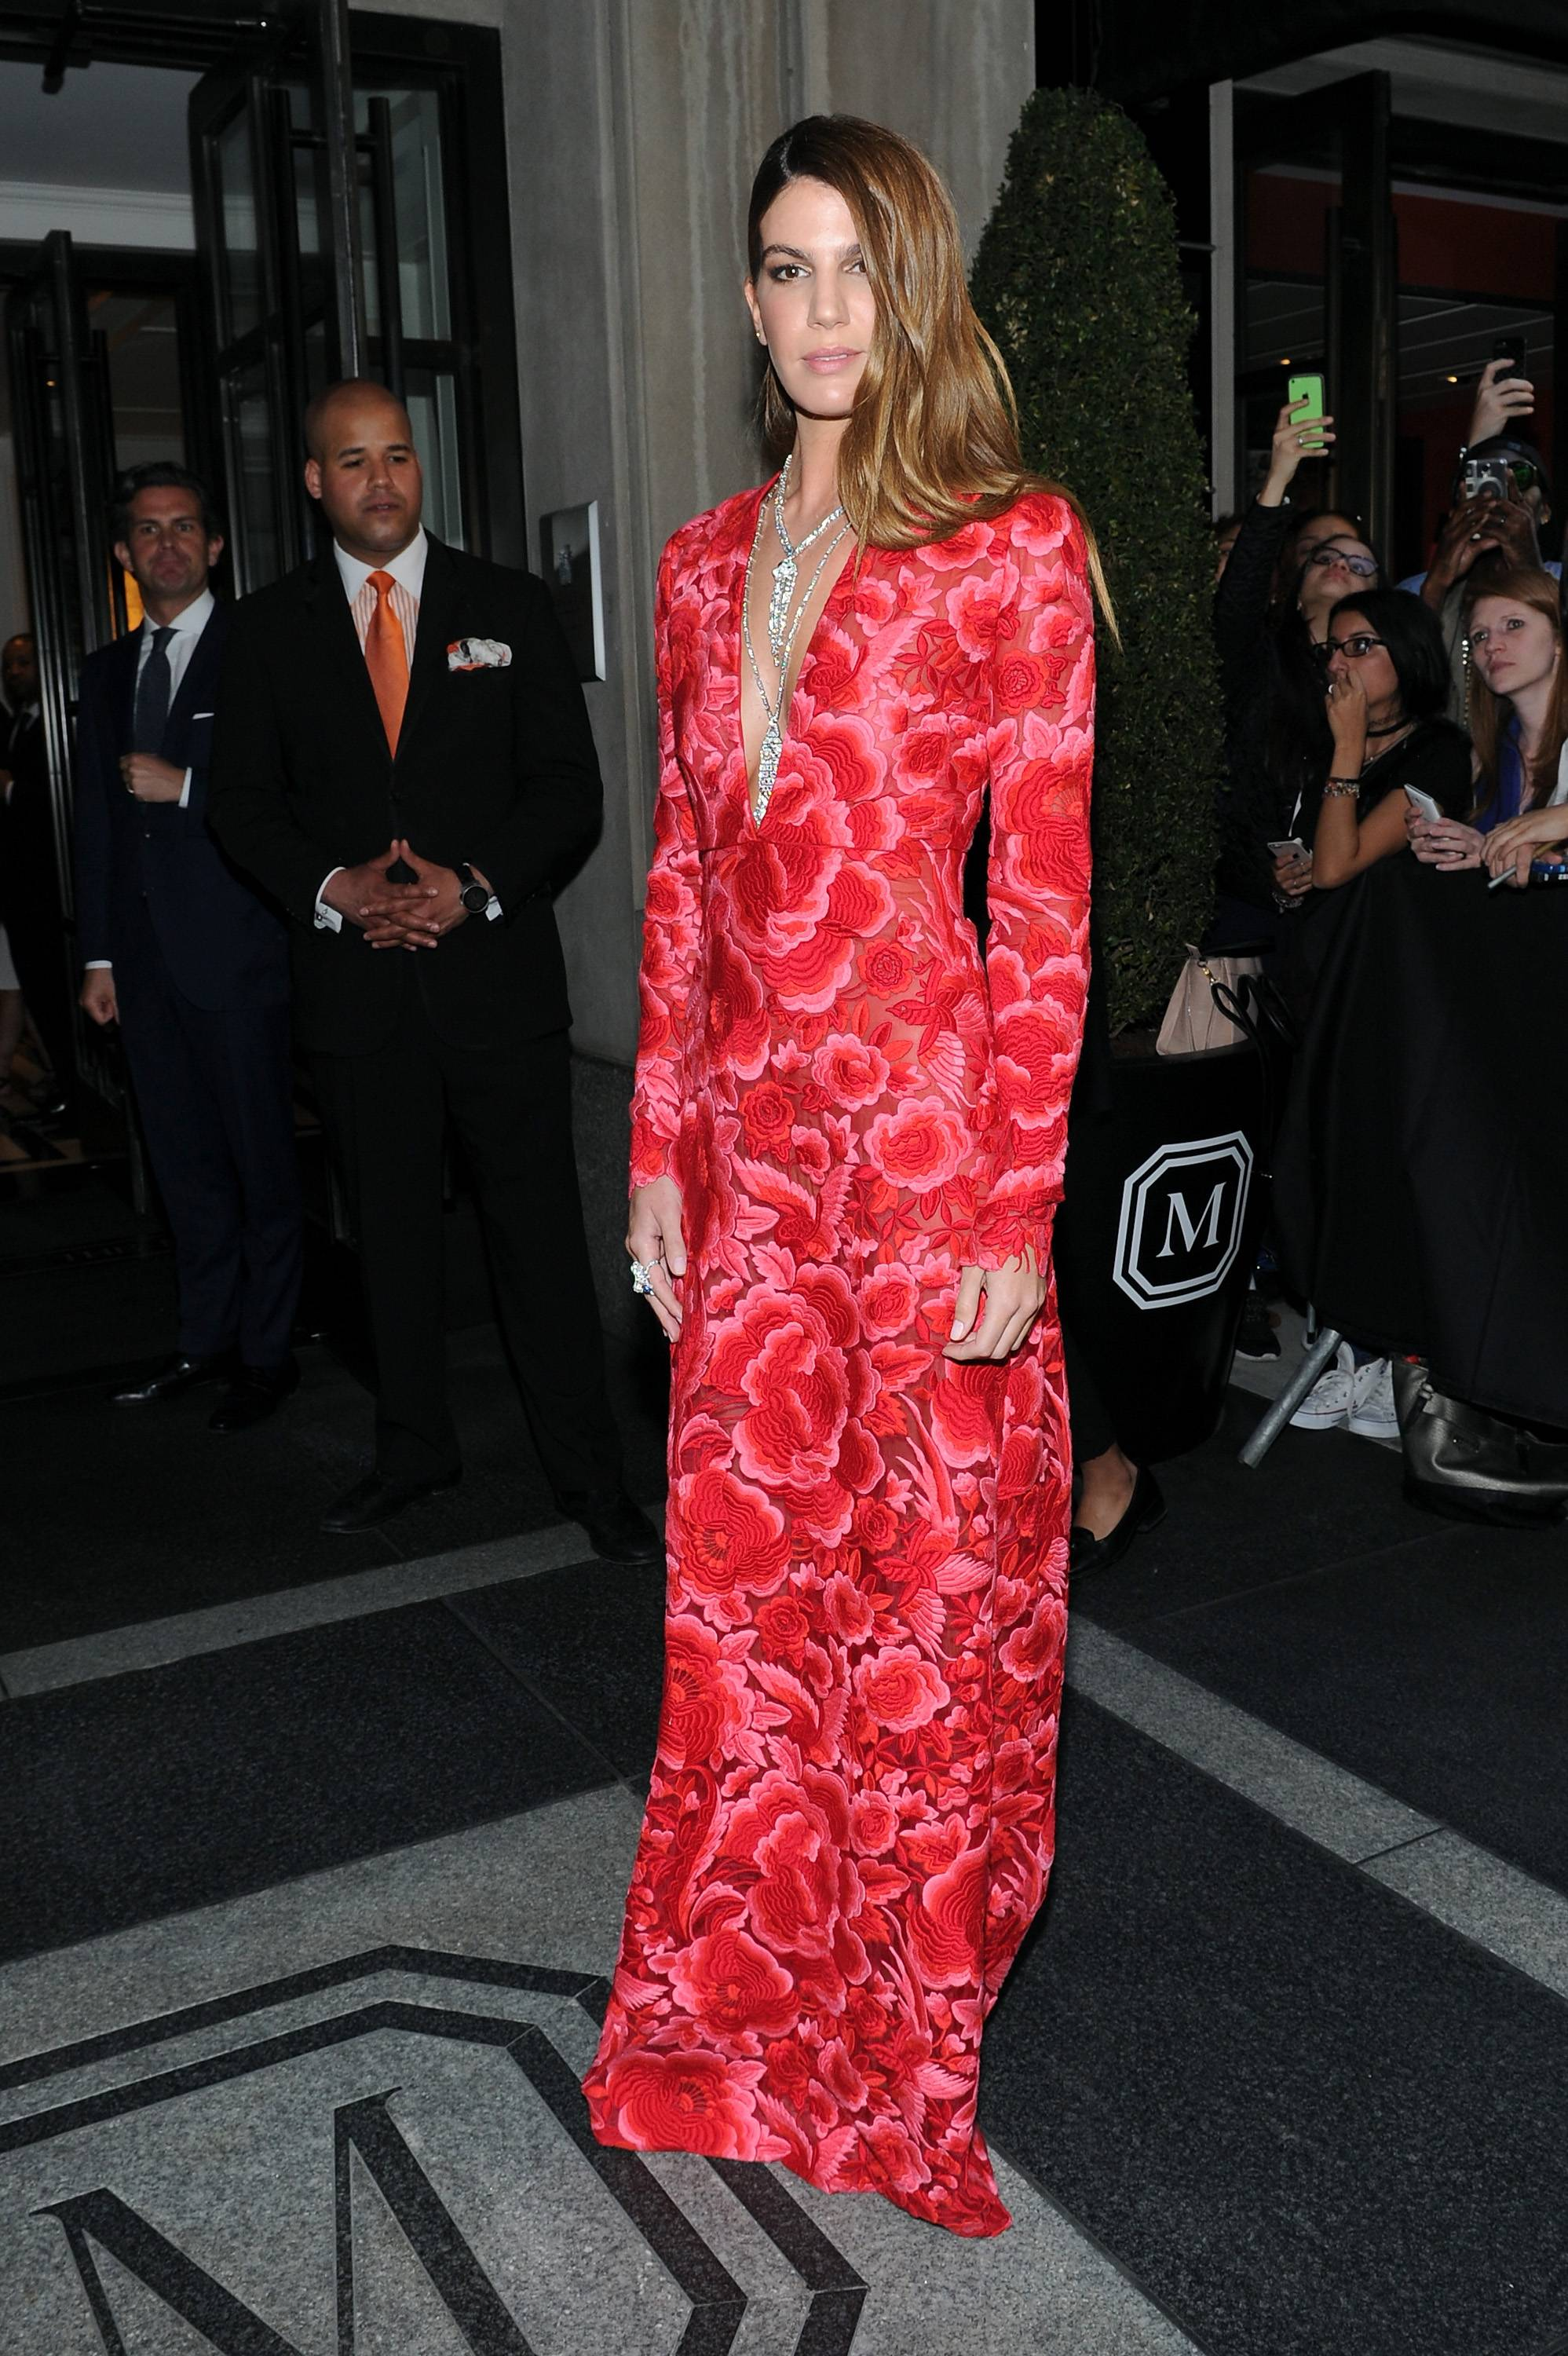 NEW YORK, NY - MAY 04: Bianca Brandolini departs The Mark Hotel for the Met Gala at the Metropolitan Museum of Art on May 4, 2015 in New York City.  (Photo by Andrew Toth/Getty Images for The Mark Hotel)